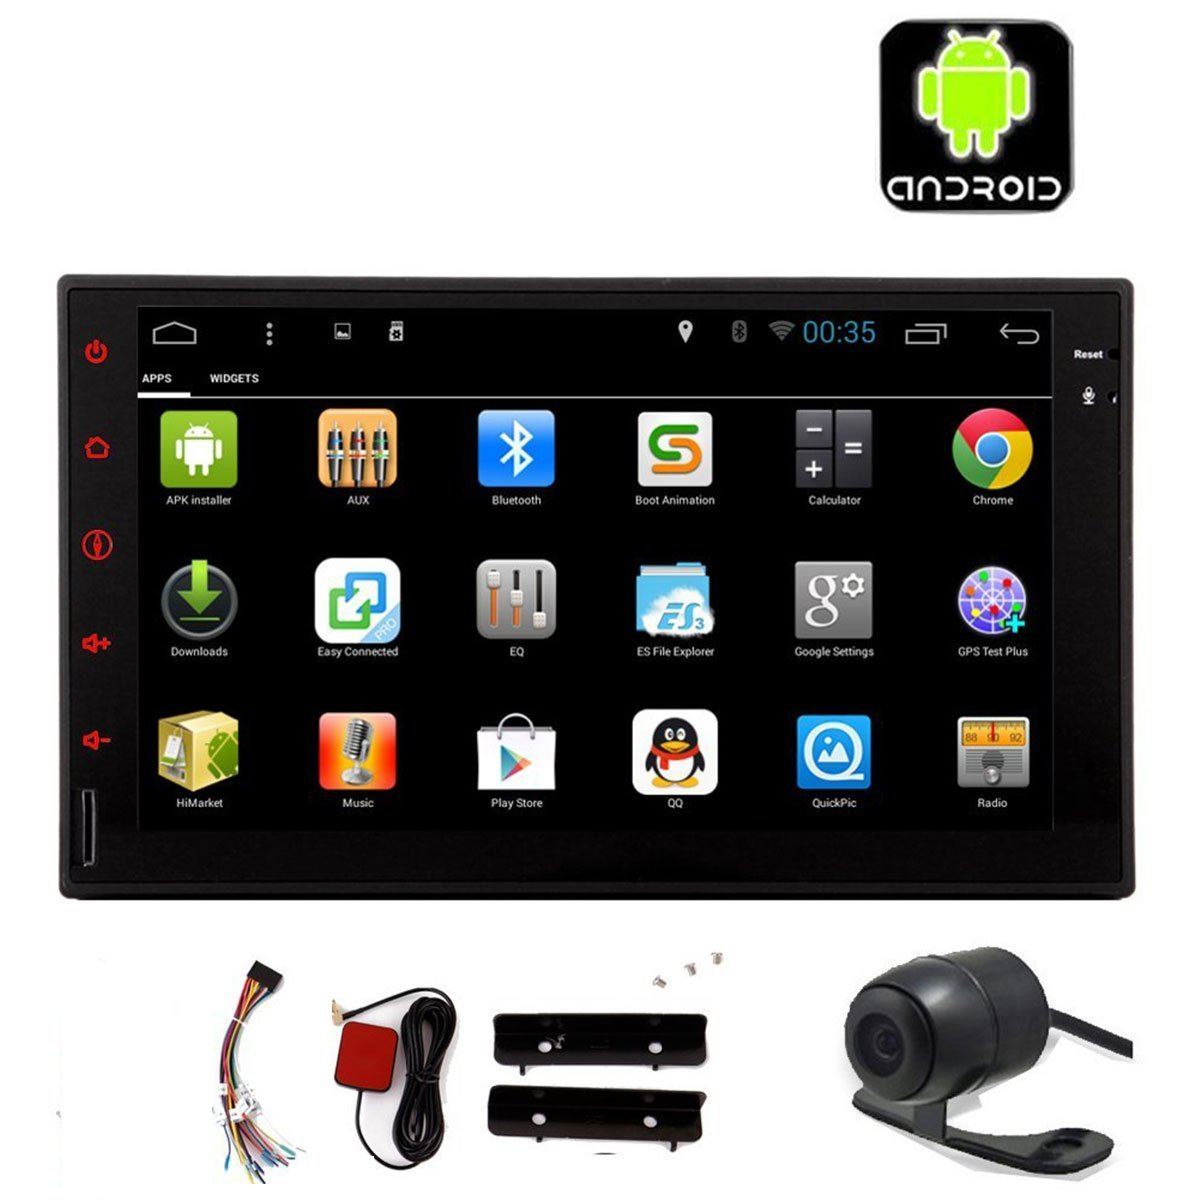 EinCar Android 4.4 system Autoradio HD Capacitive Touch Screen Car GPS DVD Player 7inch 2 Din Car Stereo In Dash Car Radio with Bluetooth